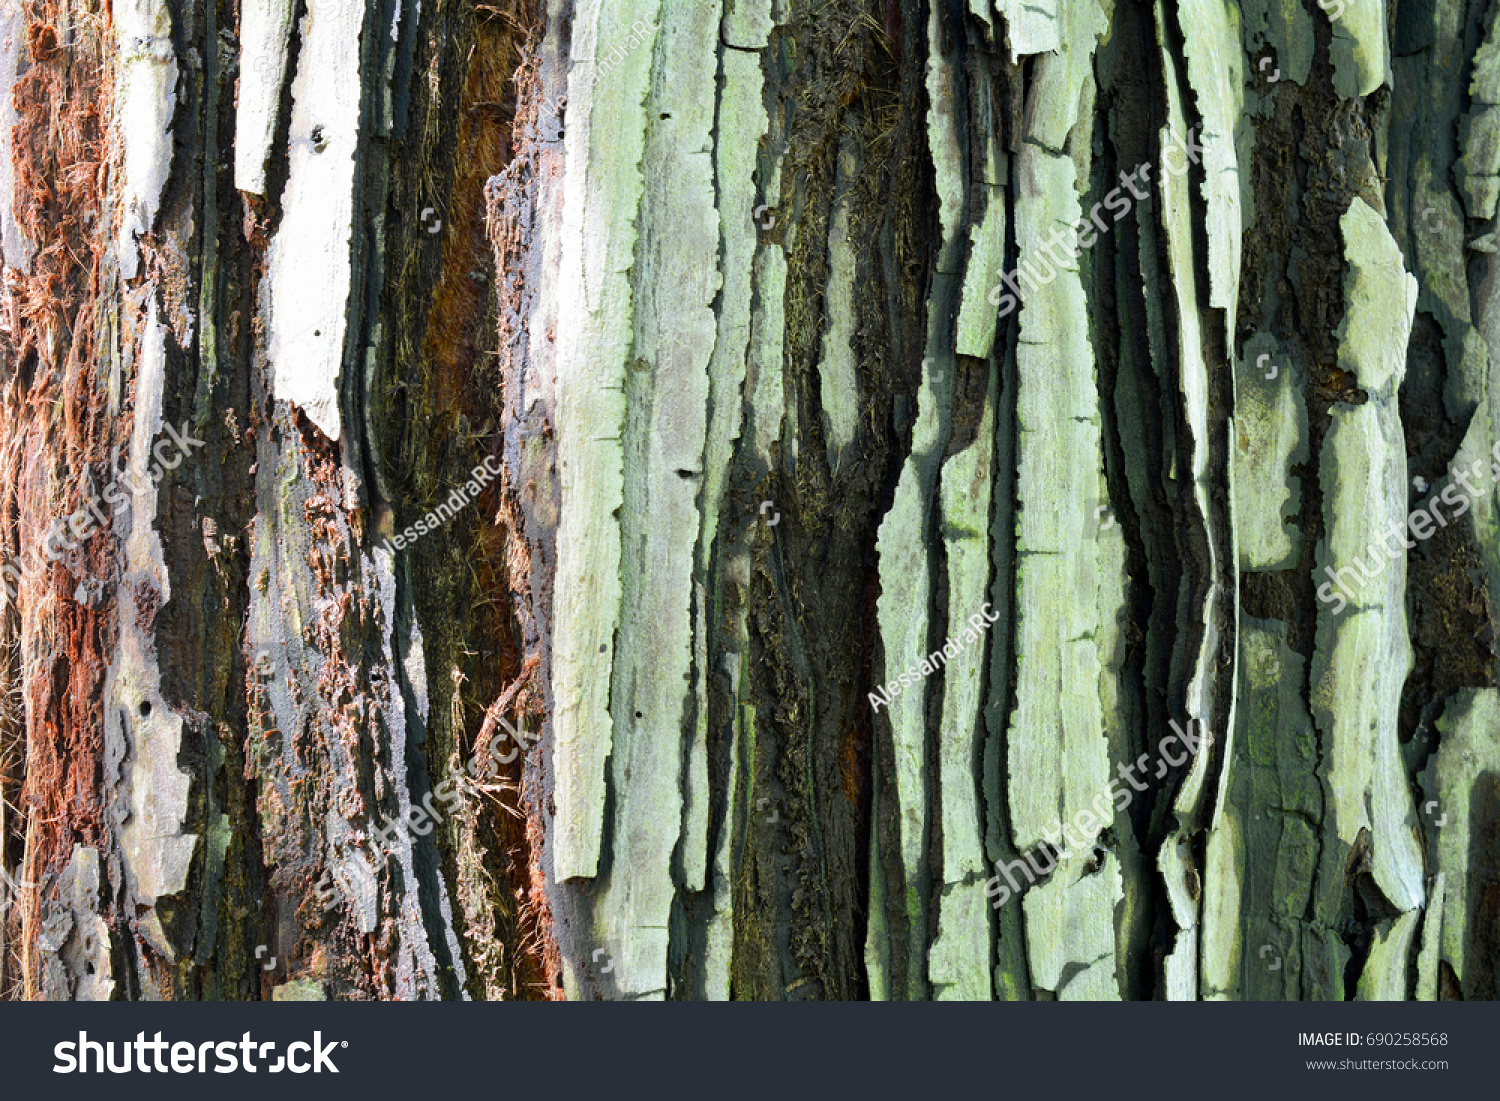 Bark Young Coastal Redwood Sequoia Sempervirens Stock Photo (Royalty ...